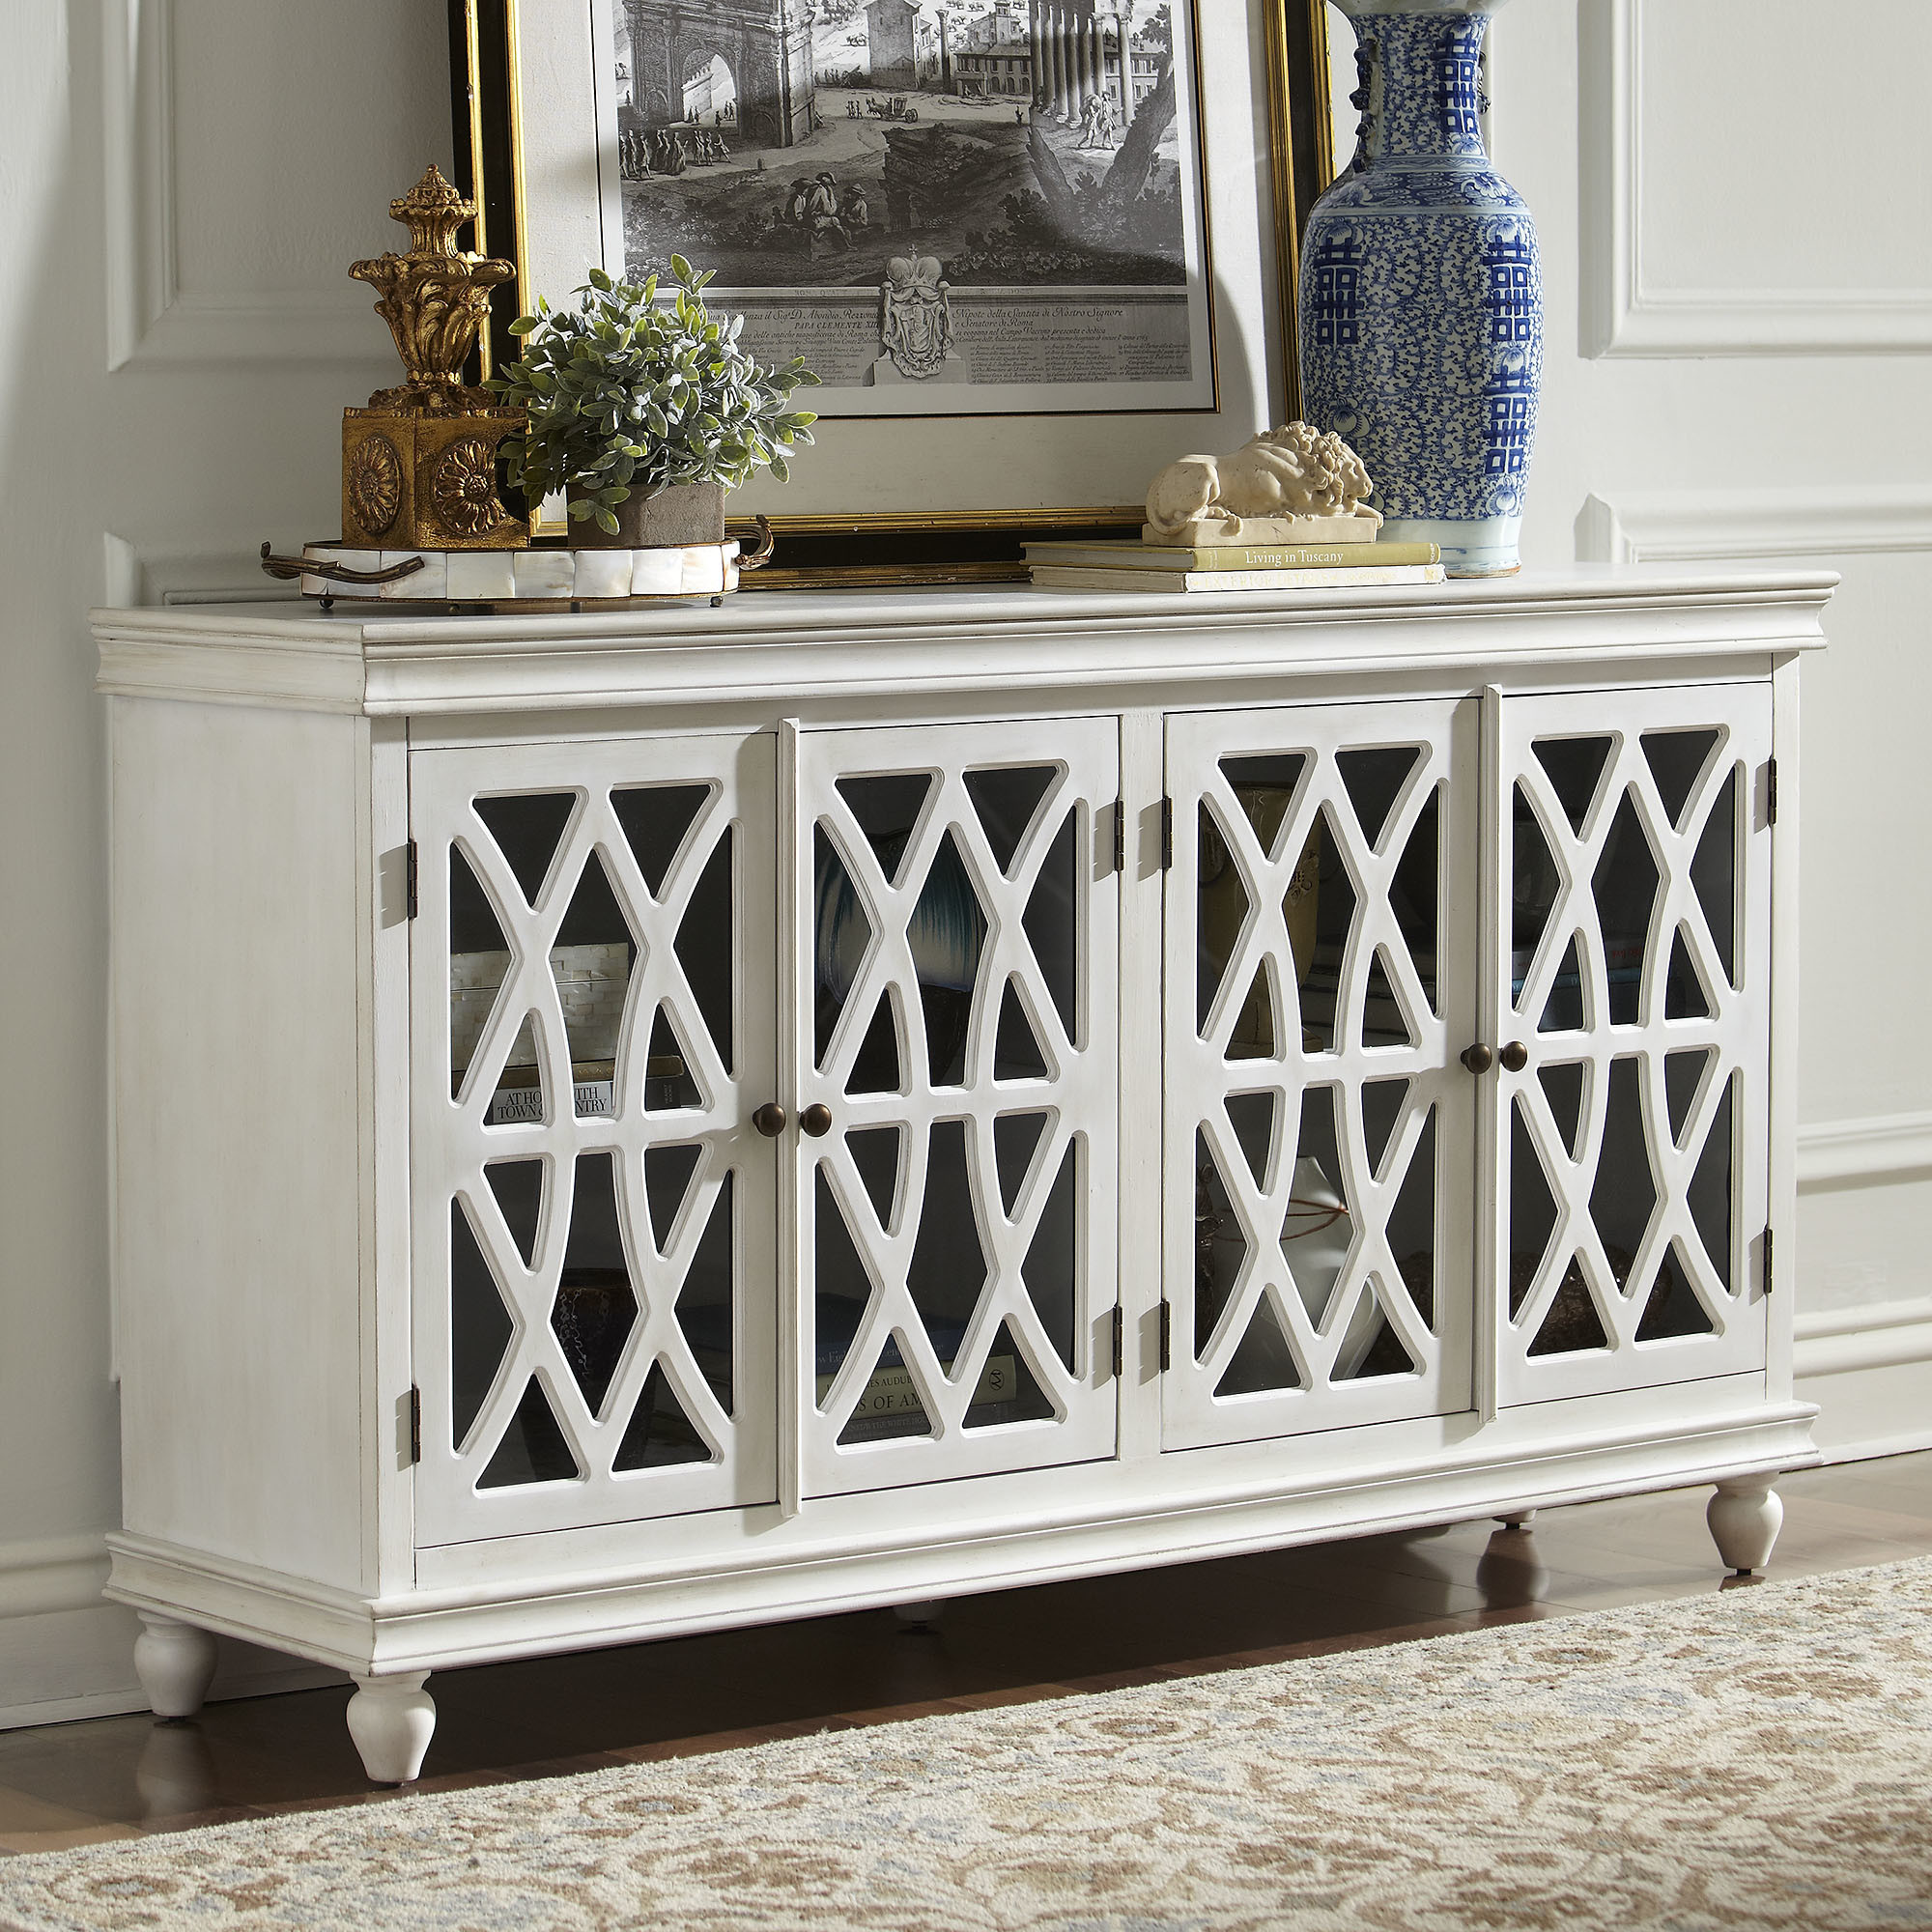 Cool sideboards and buffets for home furniture with antique sideboards and buffets